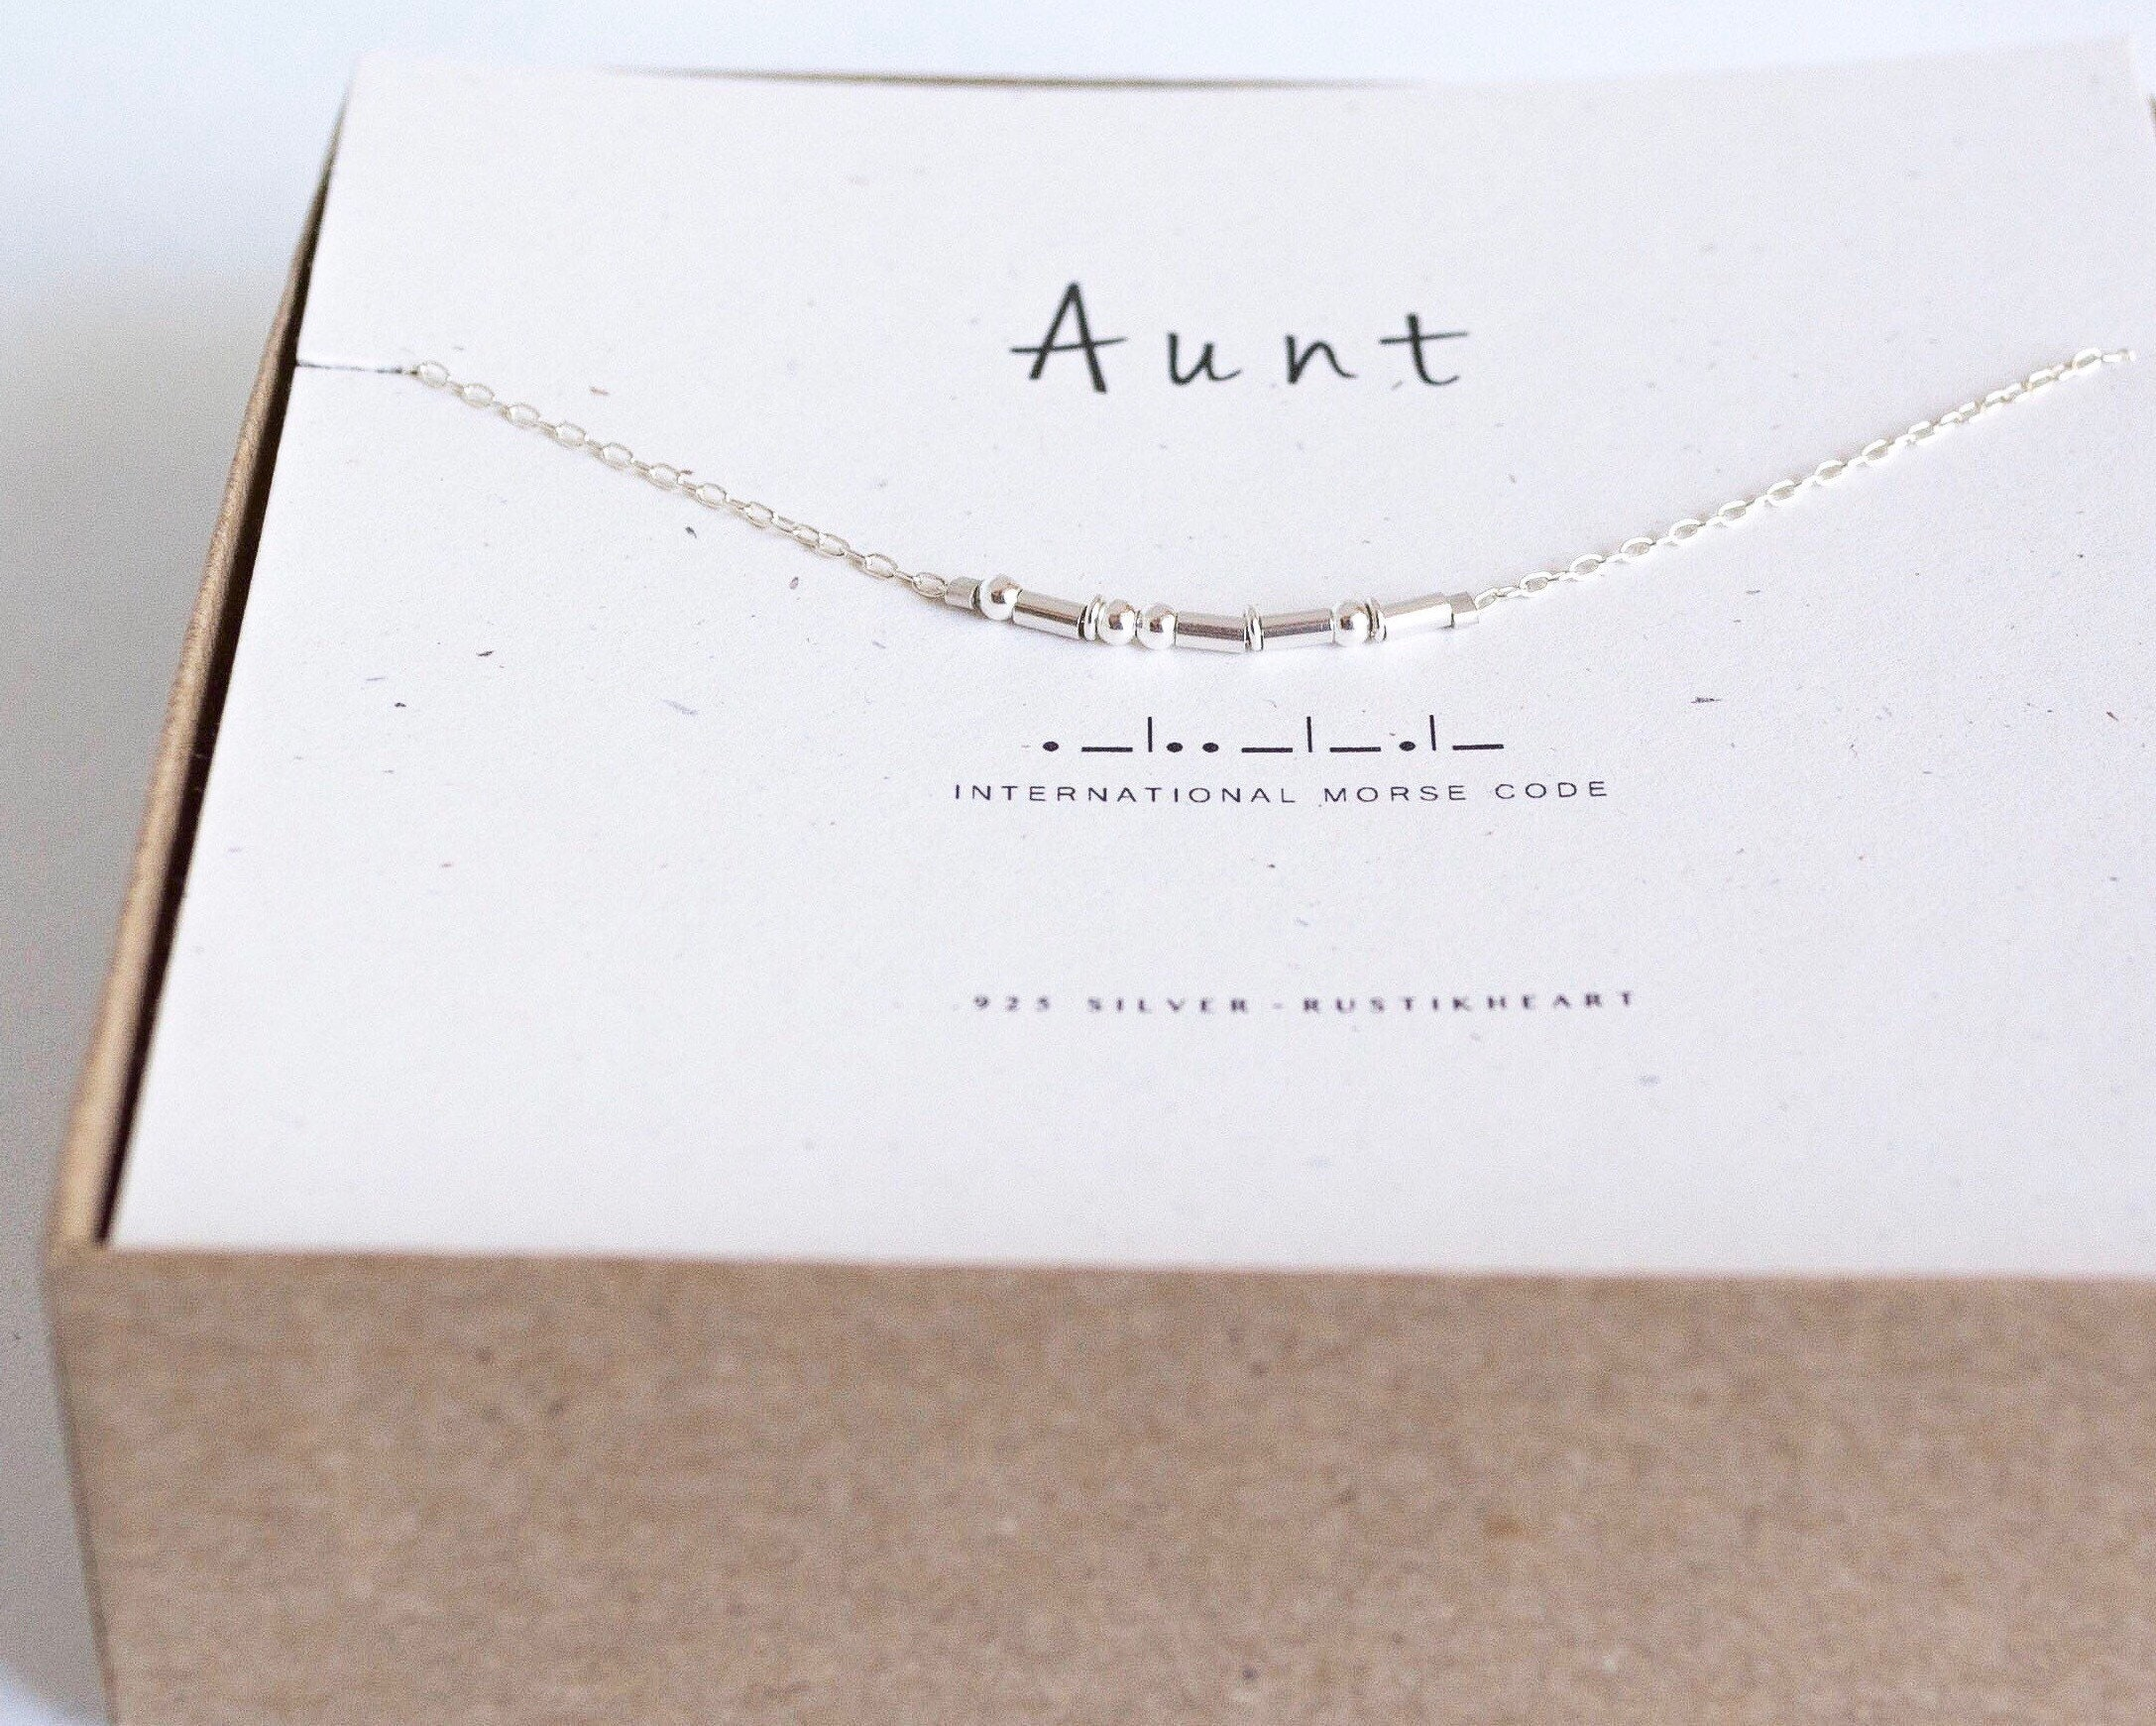 bling necklace stamped hand personalized jewelry pin for aunt auntie